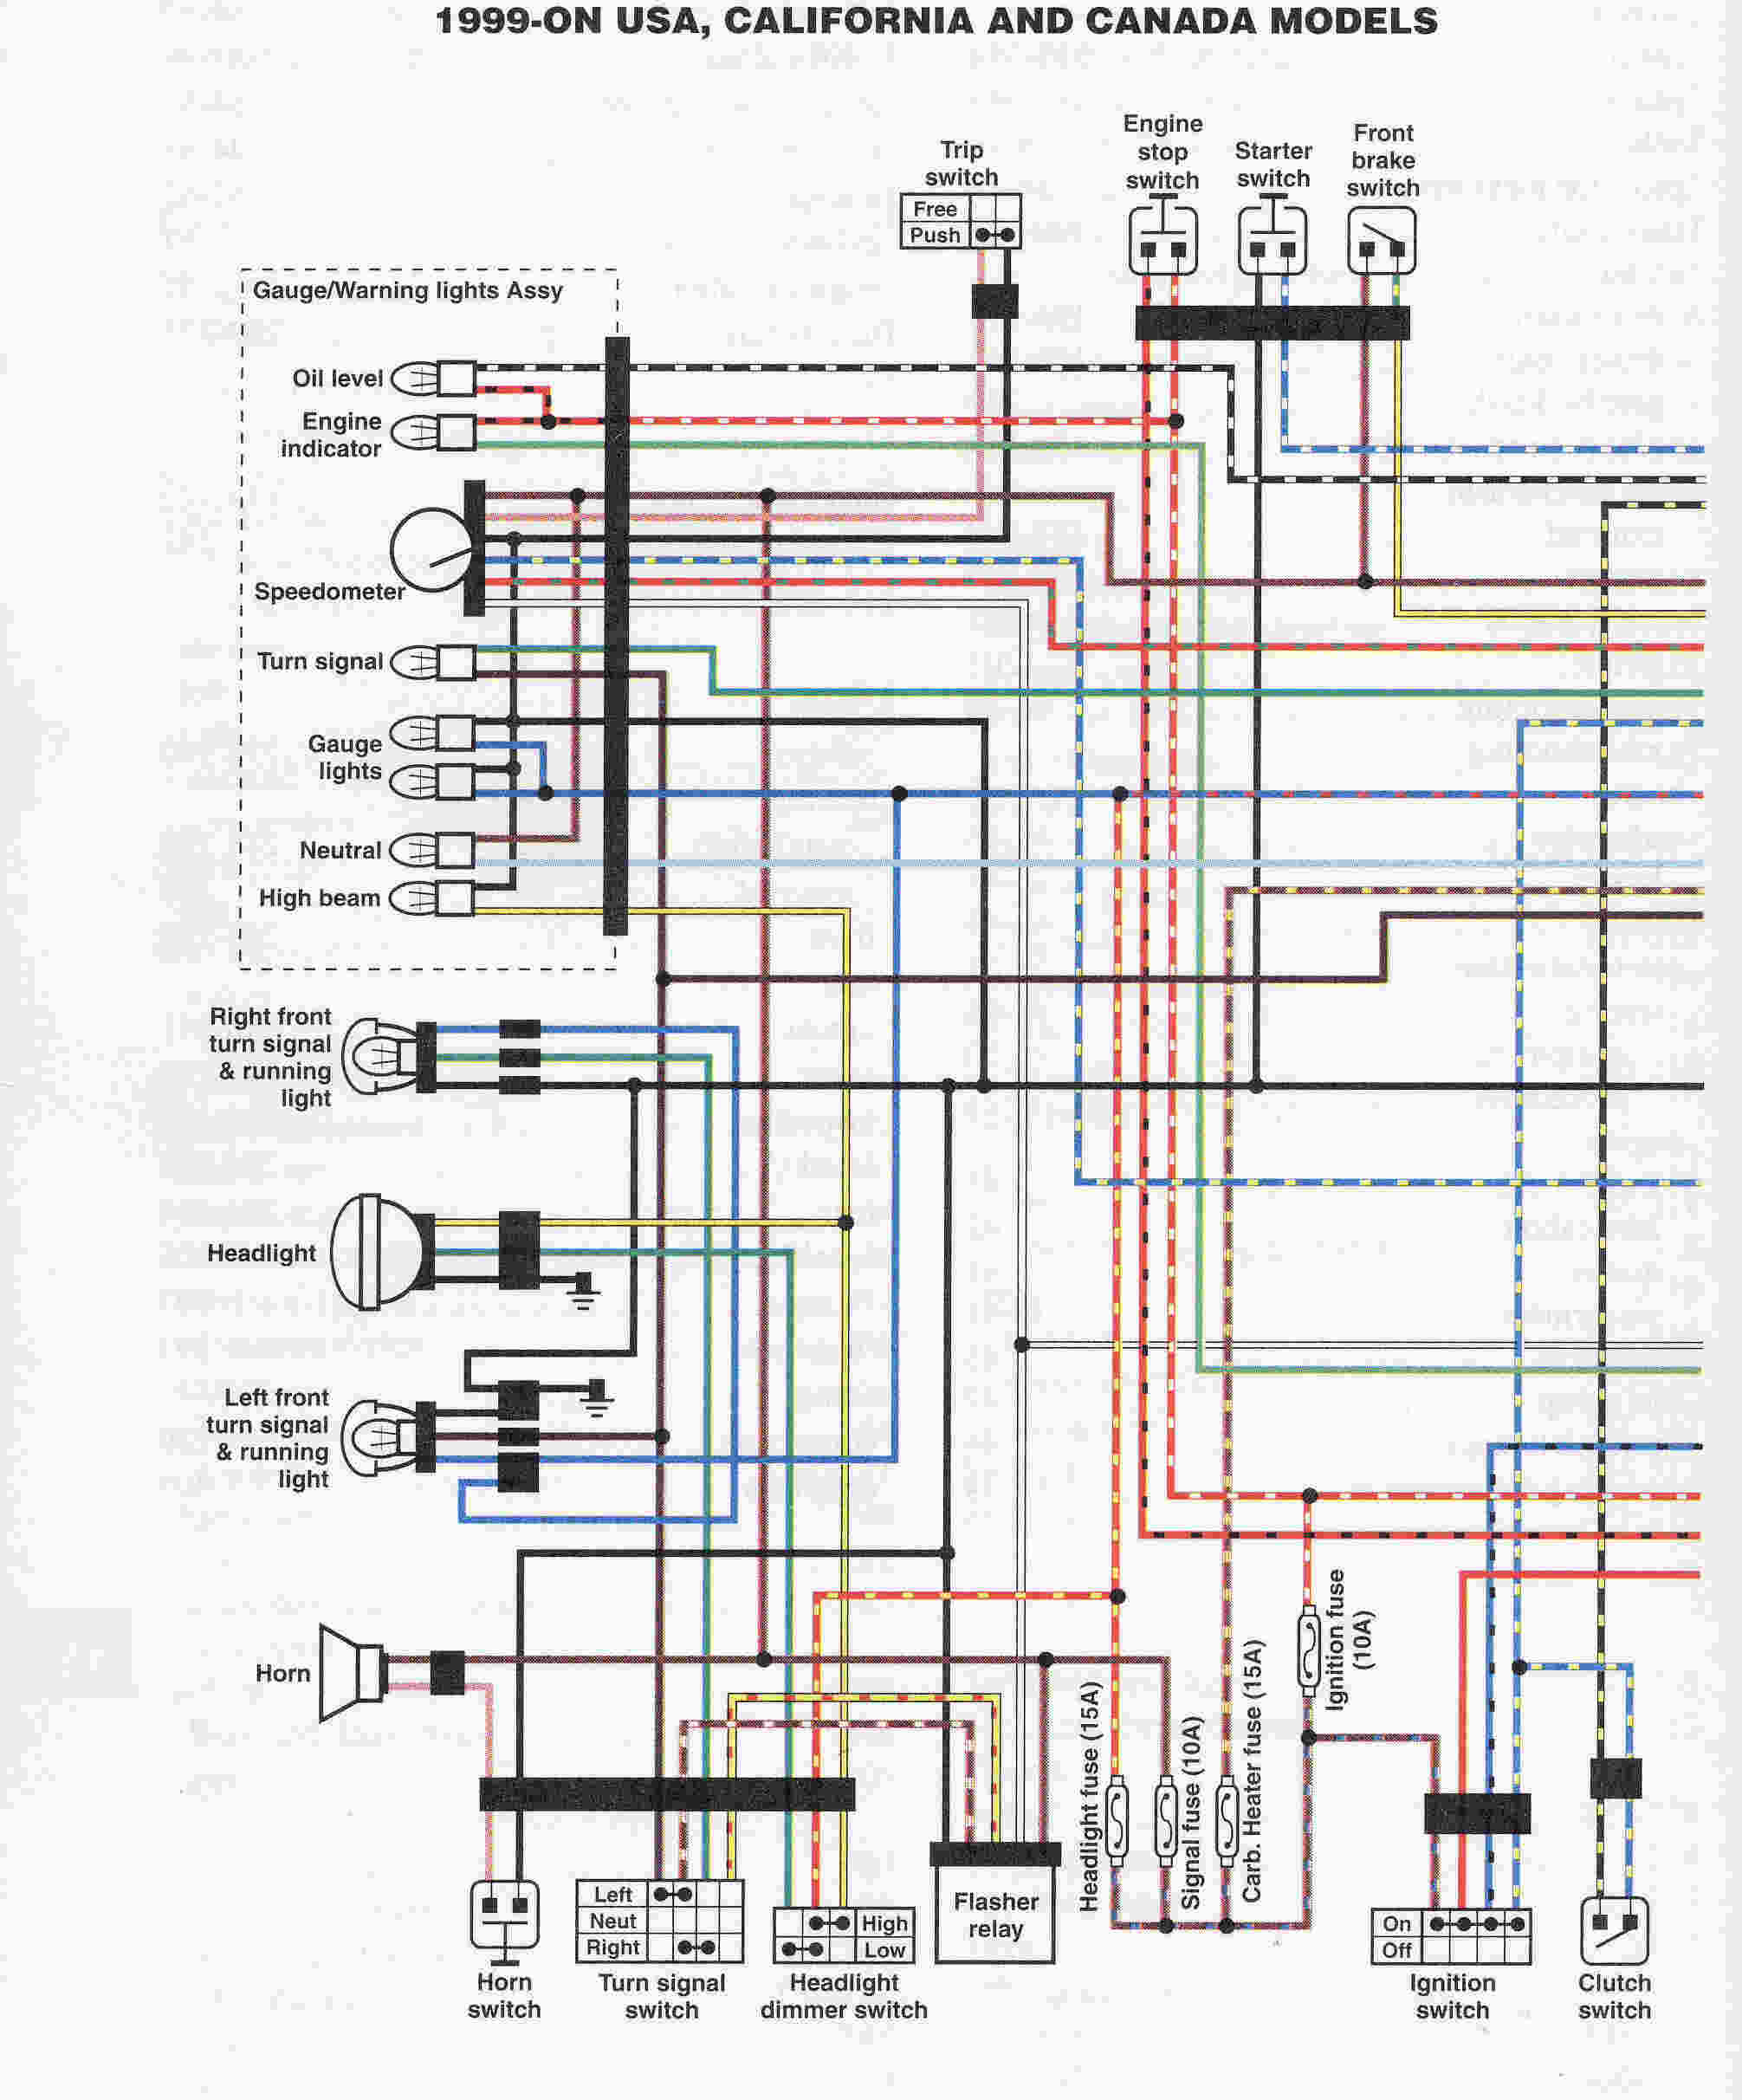 Wiring US 01 yamaha wiring diagrams 1999 wiring diagrams instruction yamaha pw50 wiring diagram at soozxer.org